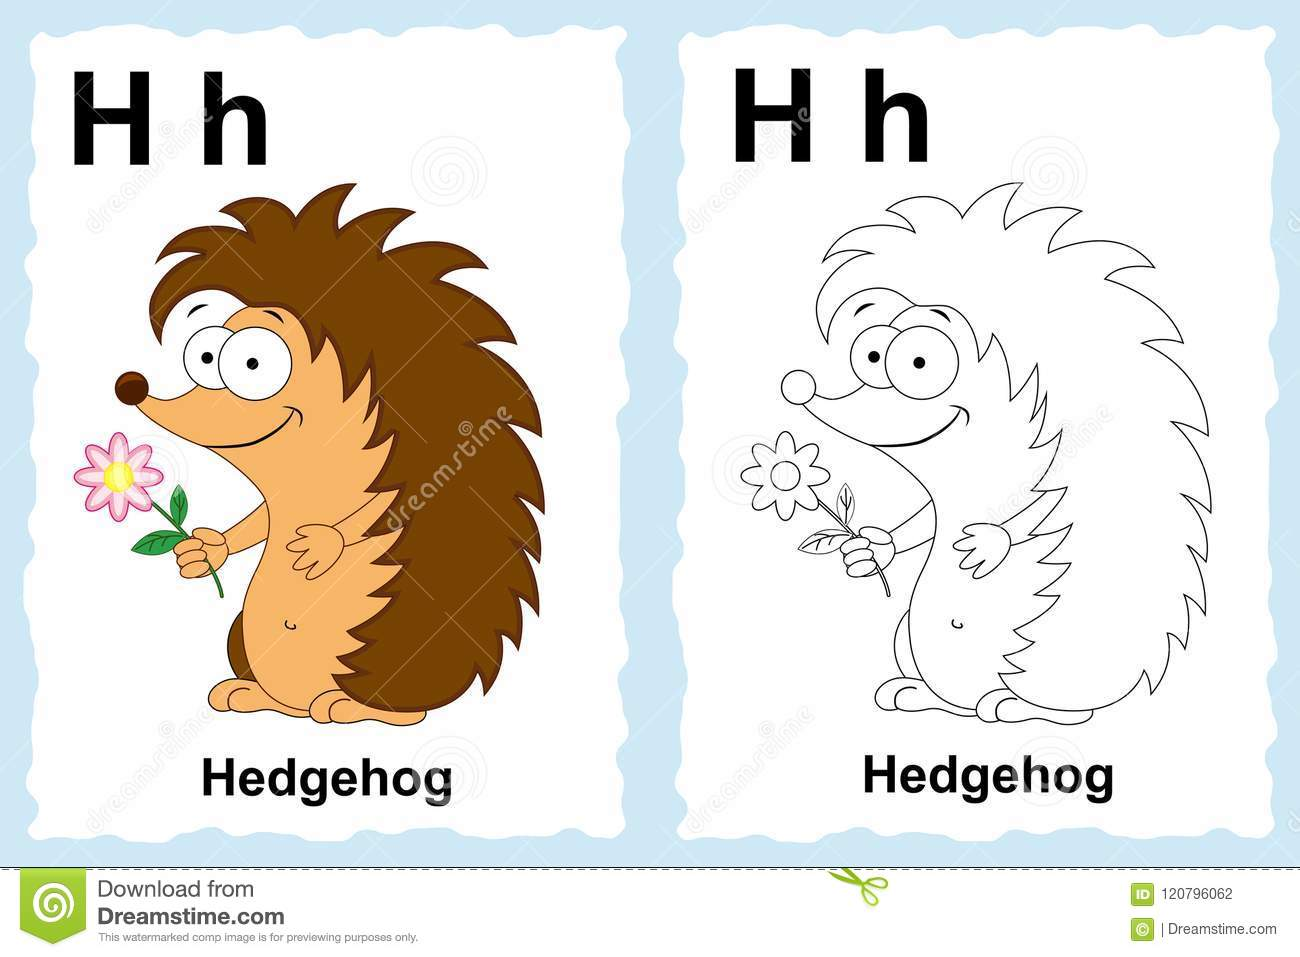 Alphabet coloring book page with outline clip art to color. Letter H.Hedgehog. Vector animals.